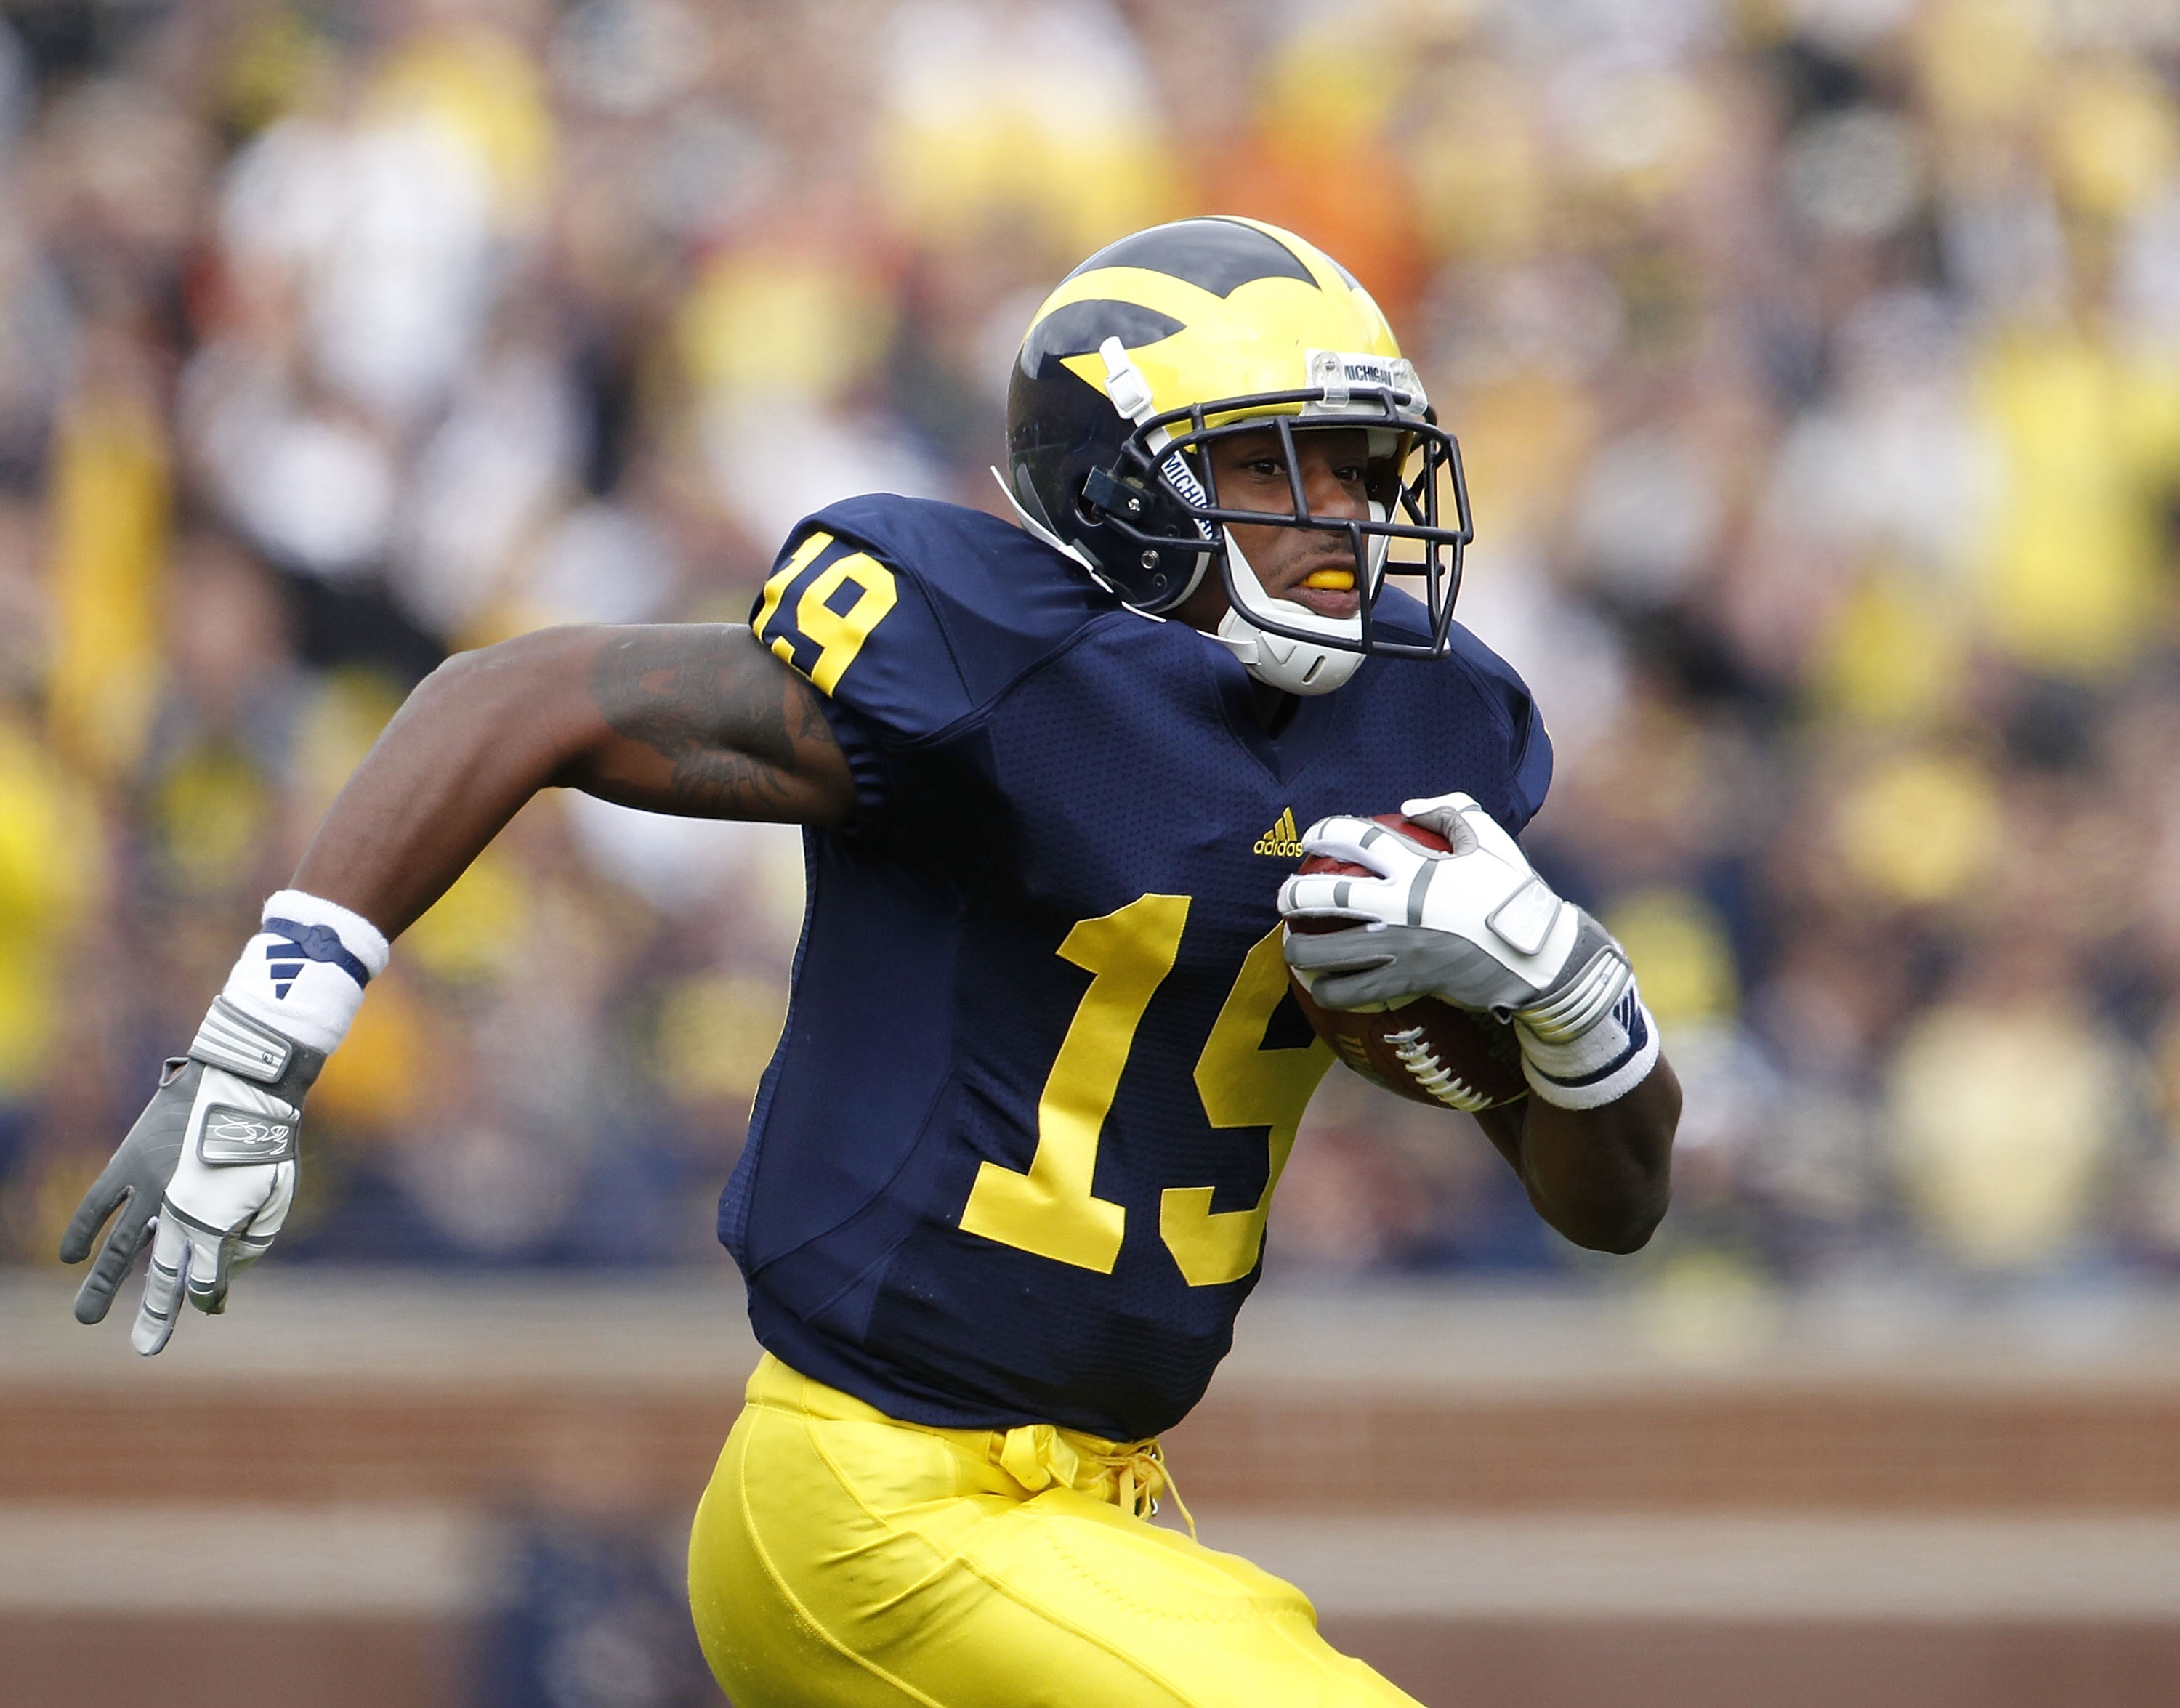 ANN ARBOR, MI - SEPTEMBER 25: Kelvin Grady #19 of the Michigan Wolverines runs for a 19 yard gain during the second quarter of the game against Bowling Green on September 25, 2010 at Michigan Stadium in Ann Arbor, Michigan. Michigan defeated Bowling Green